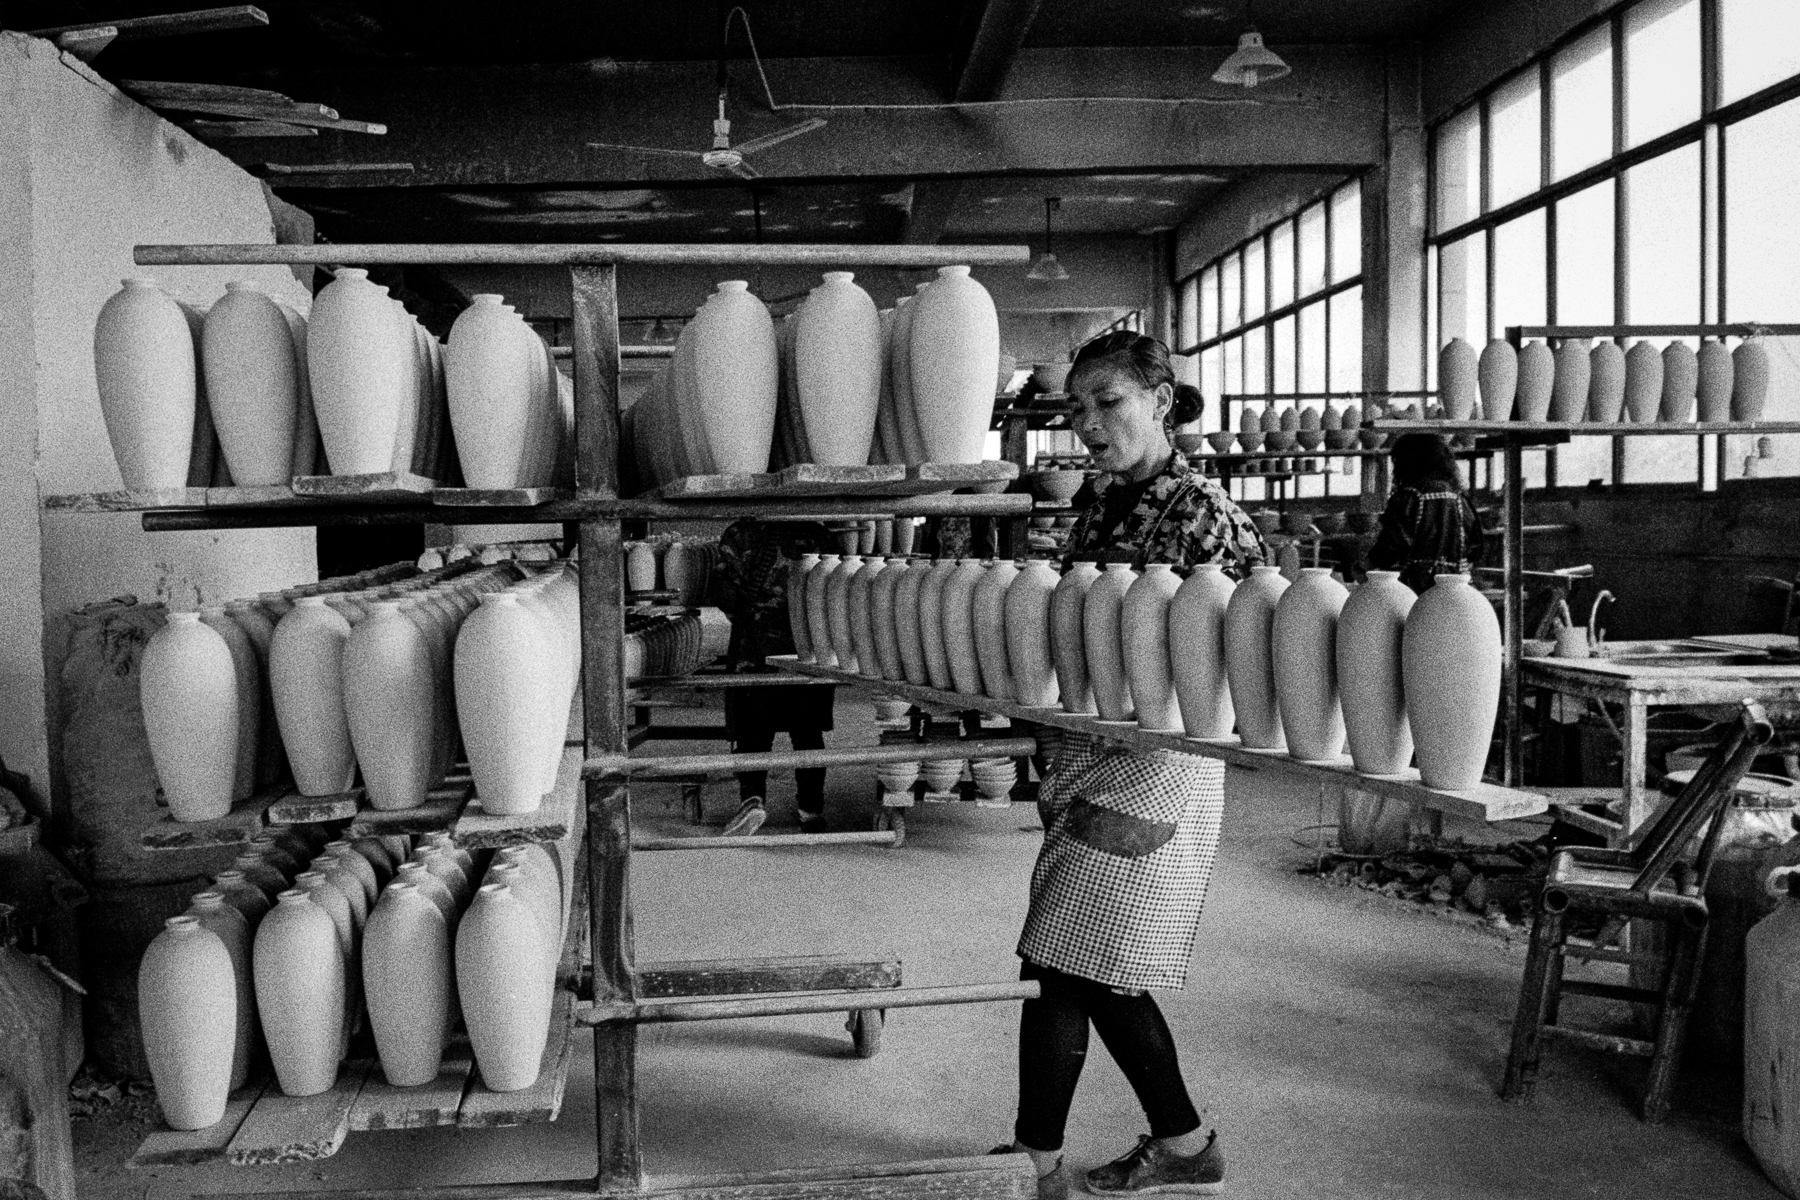 The porcelain makers using traditional hand process make fine china. Photo is shot on Ilford hp5 film, 2018.